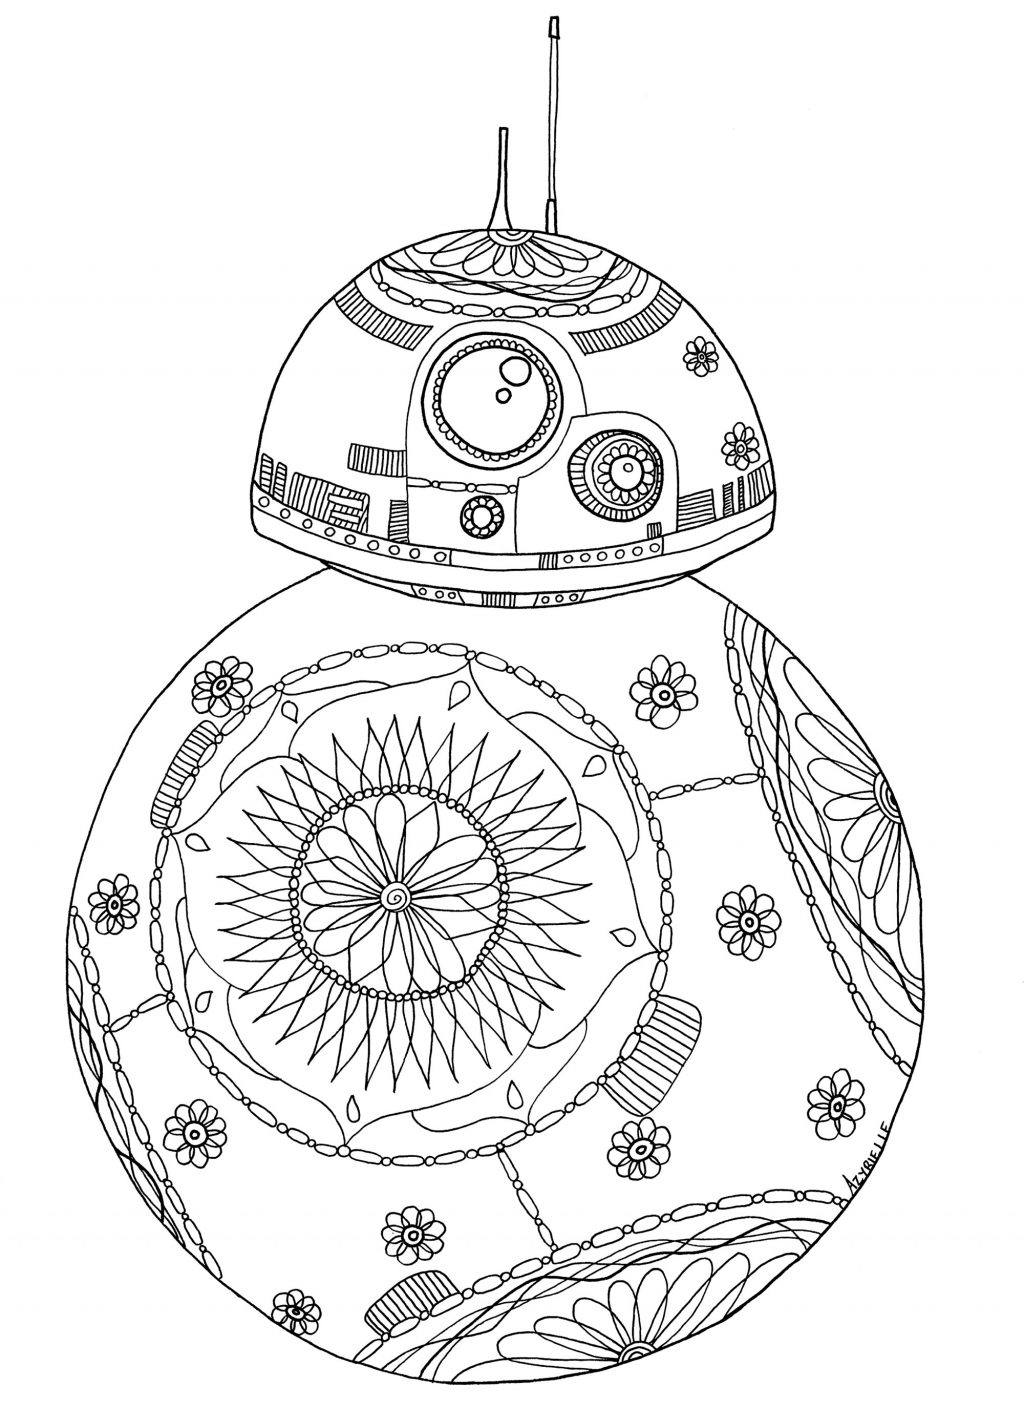 Star Wars Color Pages Coloring Pages Star Wars Coloring Sheets Freeble To Print Pdf Luke